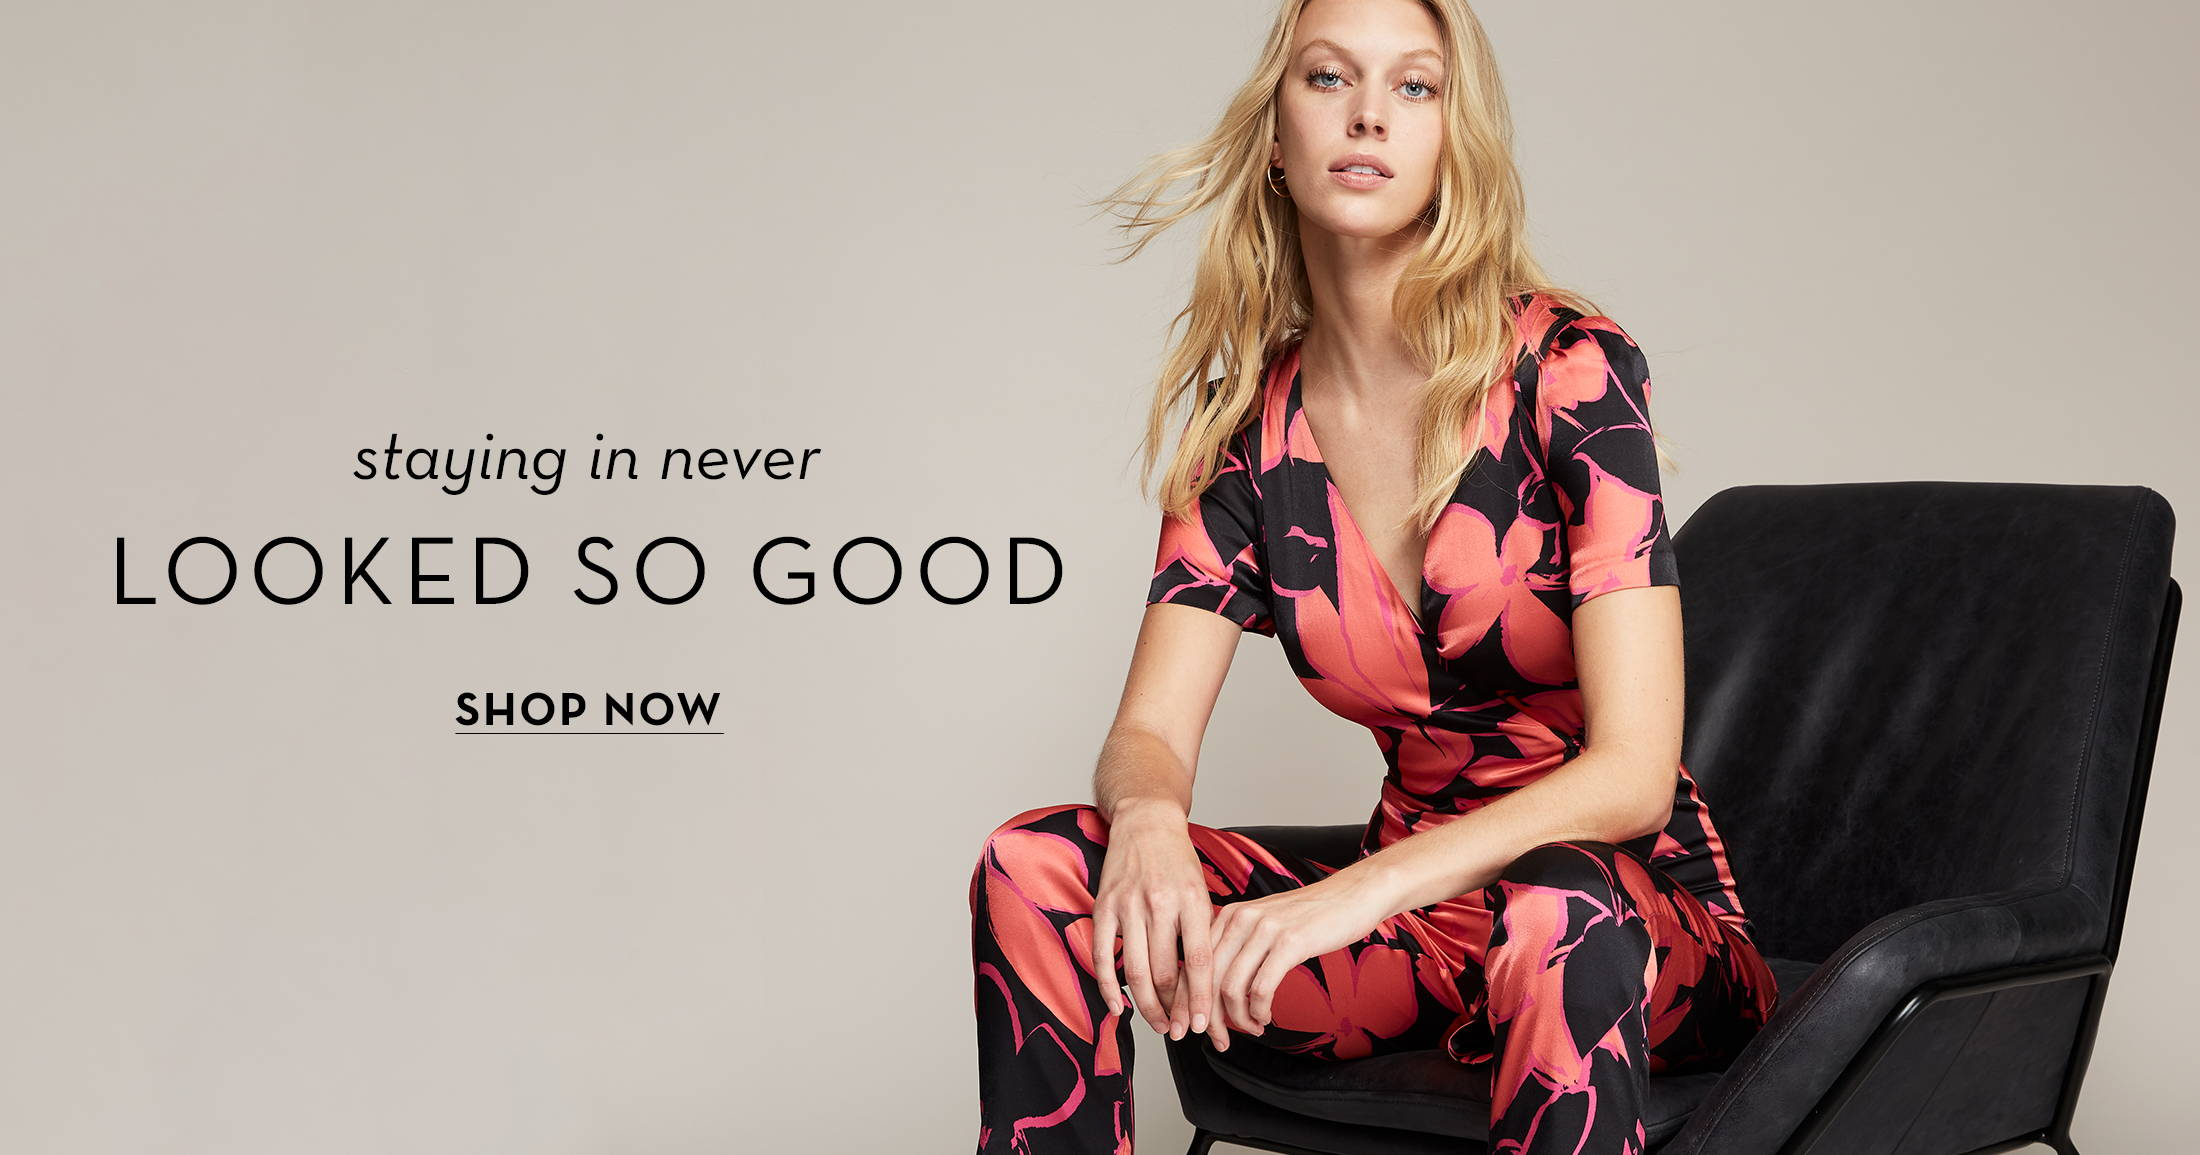 Staying in never looked so good, shop now